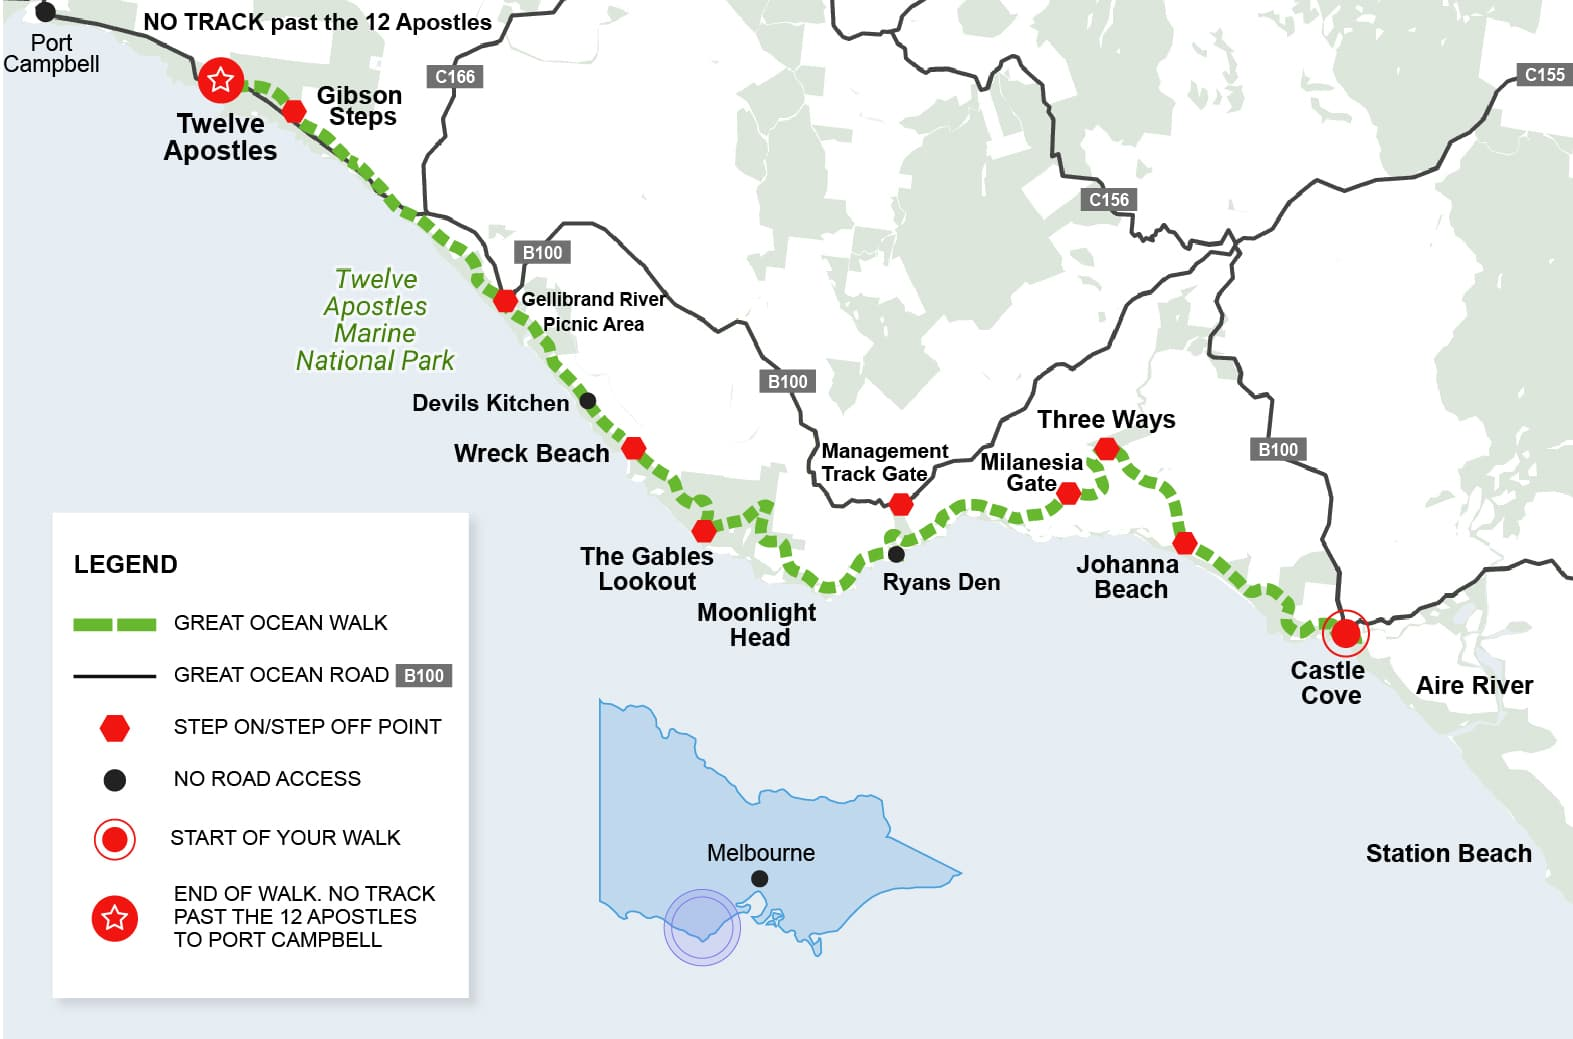 Great Ocean Walk Map 3 Day Great Ocean Walk Tour | 12 Apostles Walk